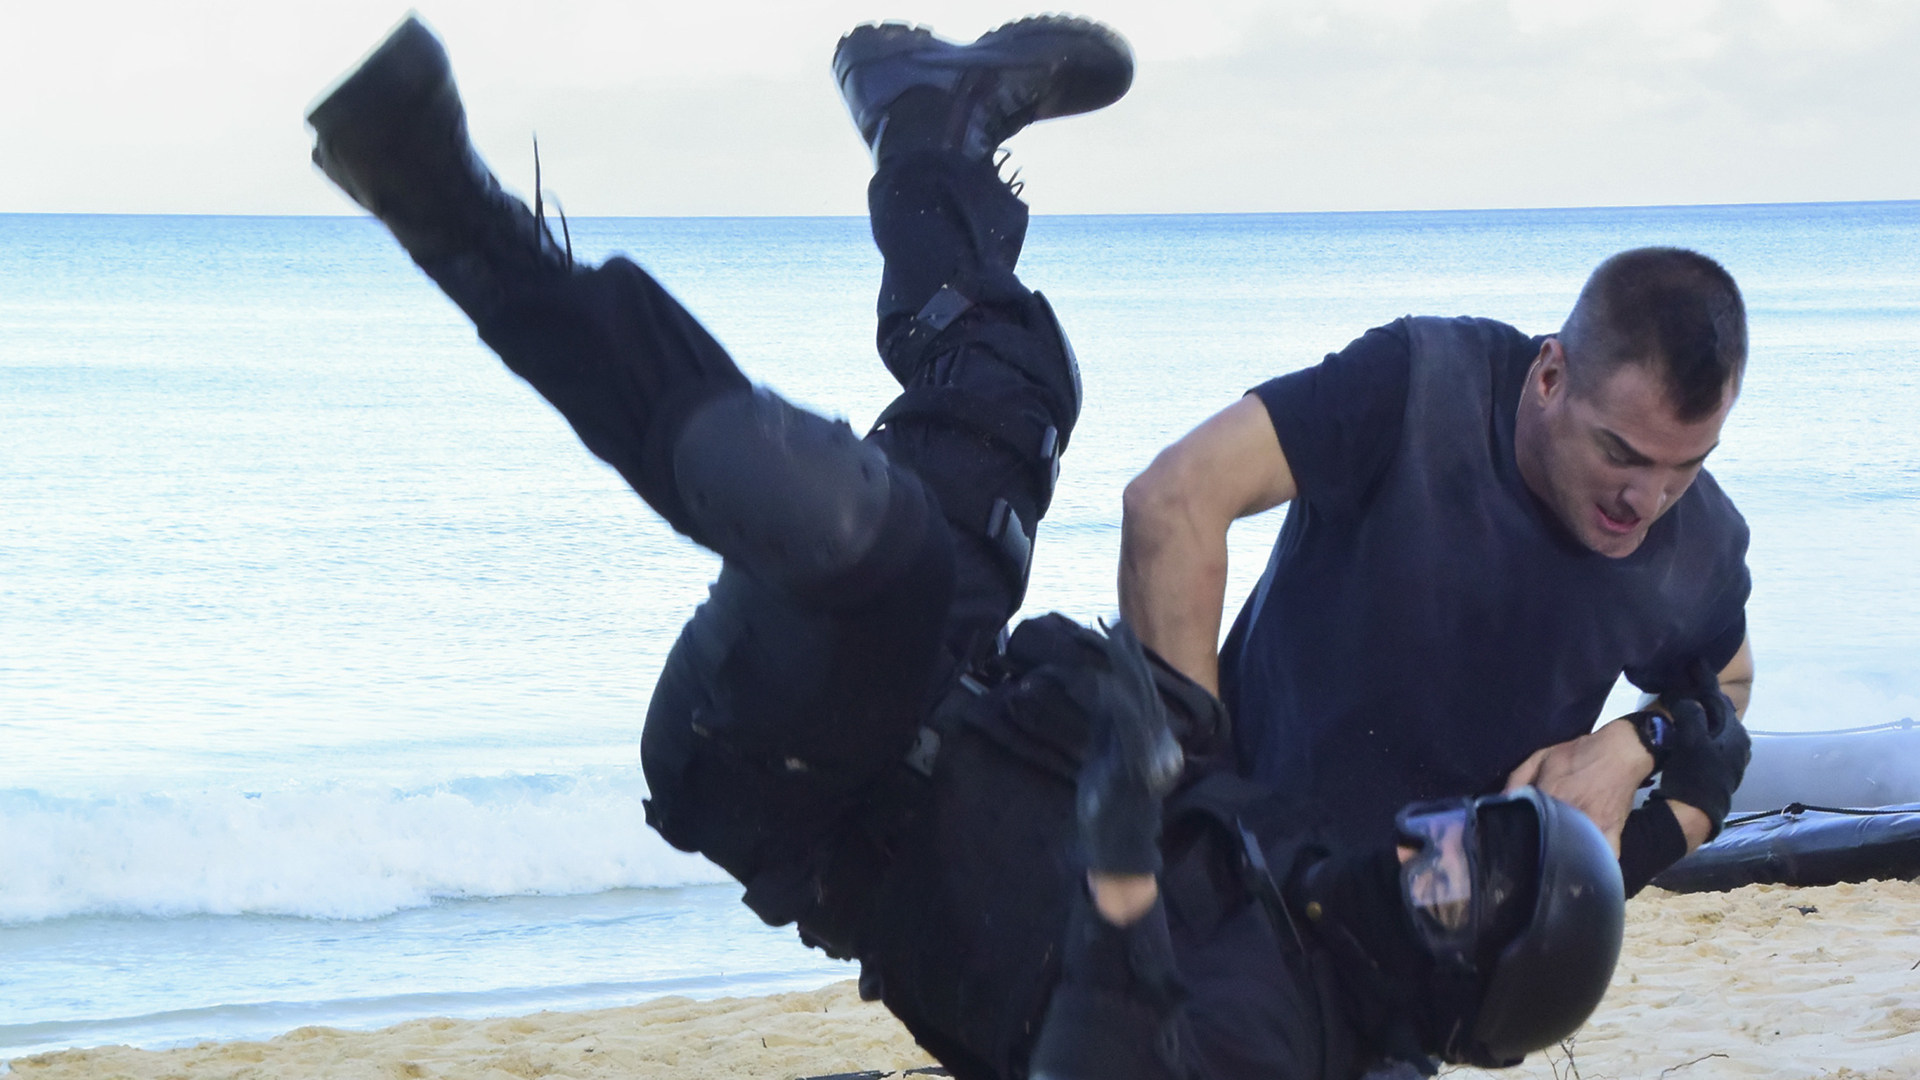 Jack uses his famous takedown moves on the beach.